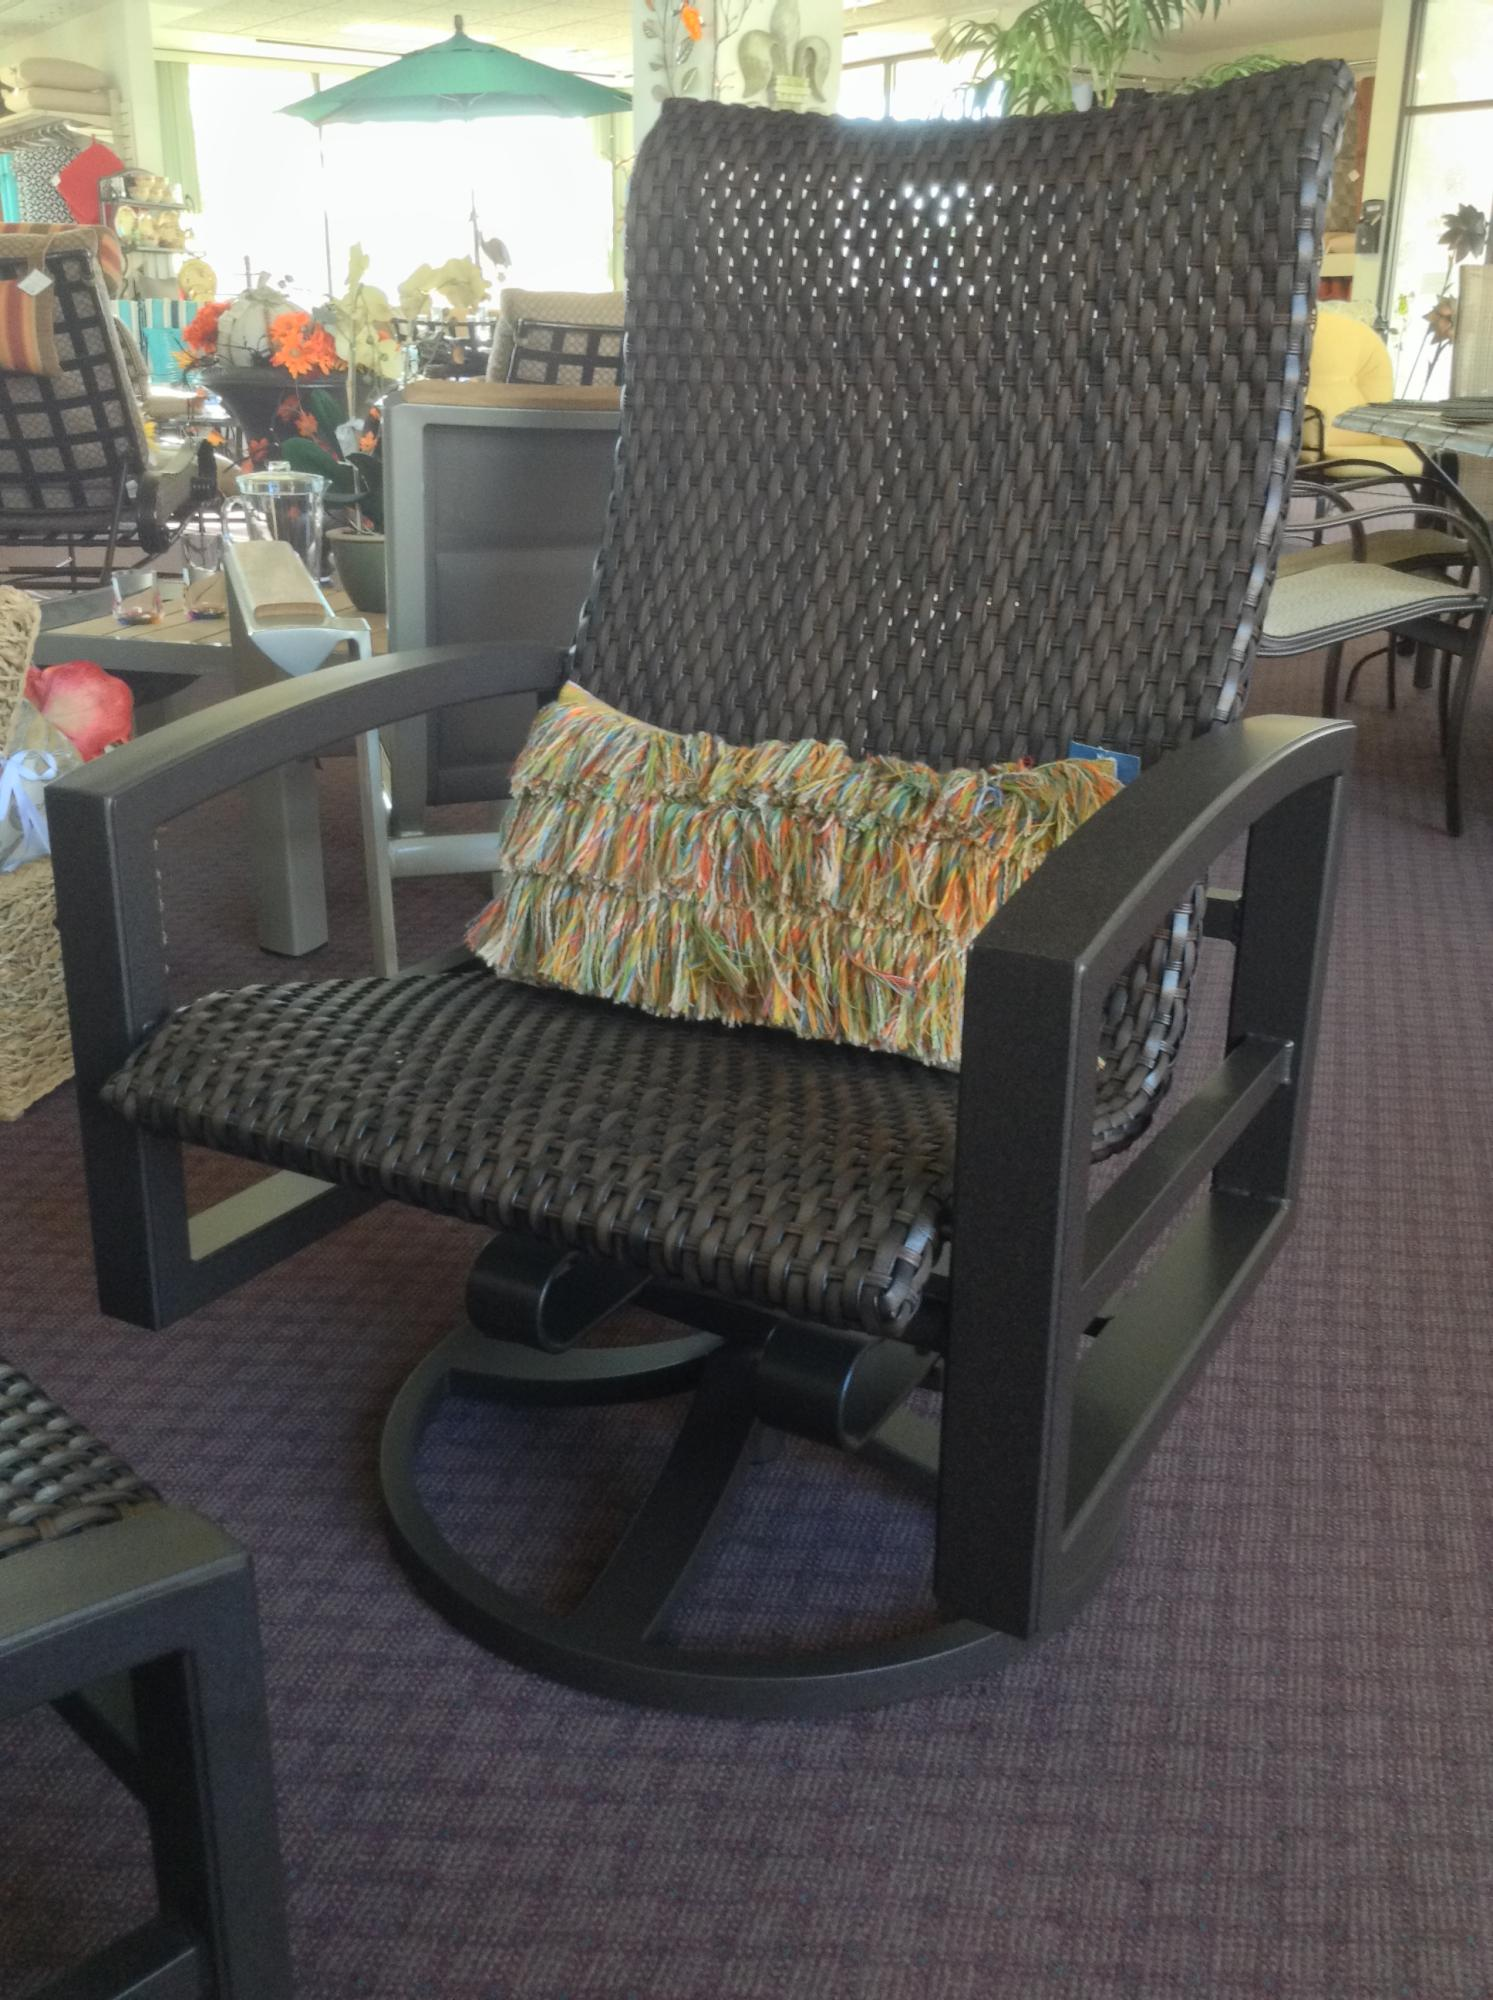 "Lakeside Woven Swivel Action Lounger W=28.5"" D=29.5"" H=42"" SH=17.5"" AH=25"""